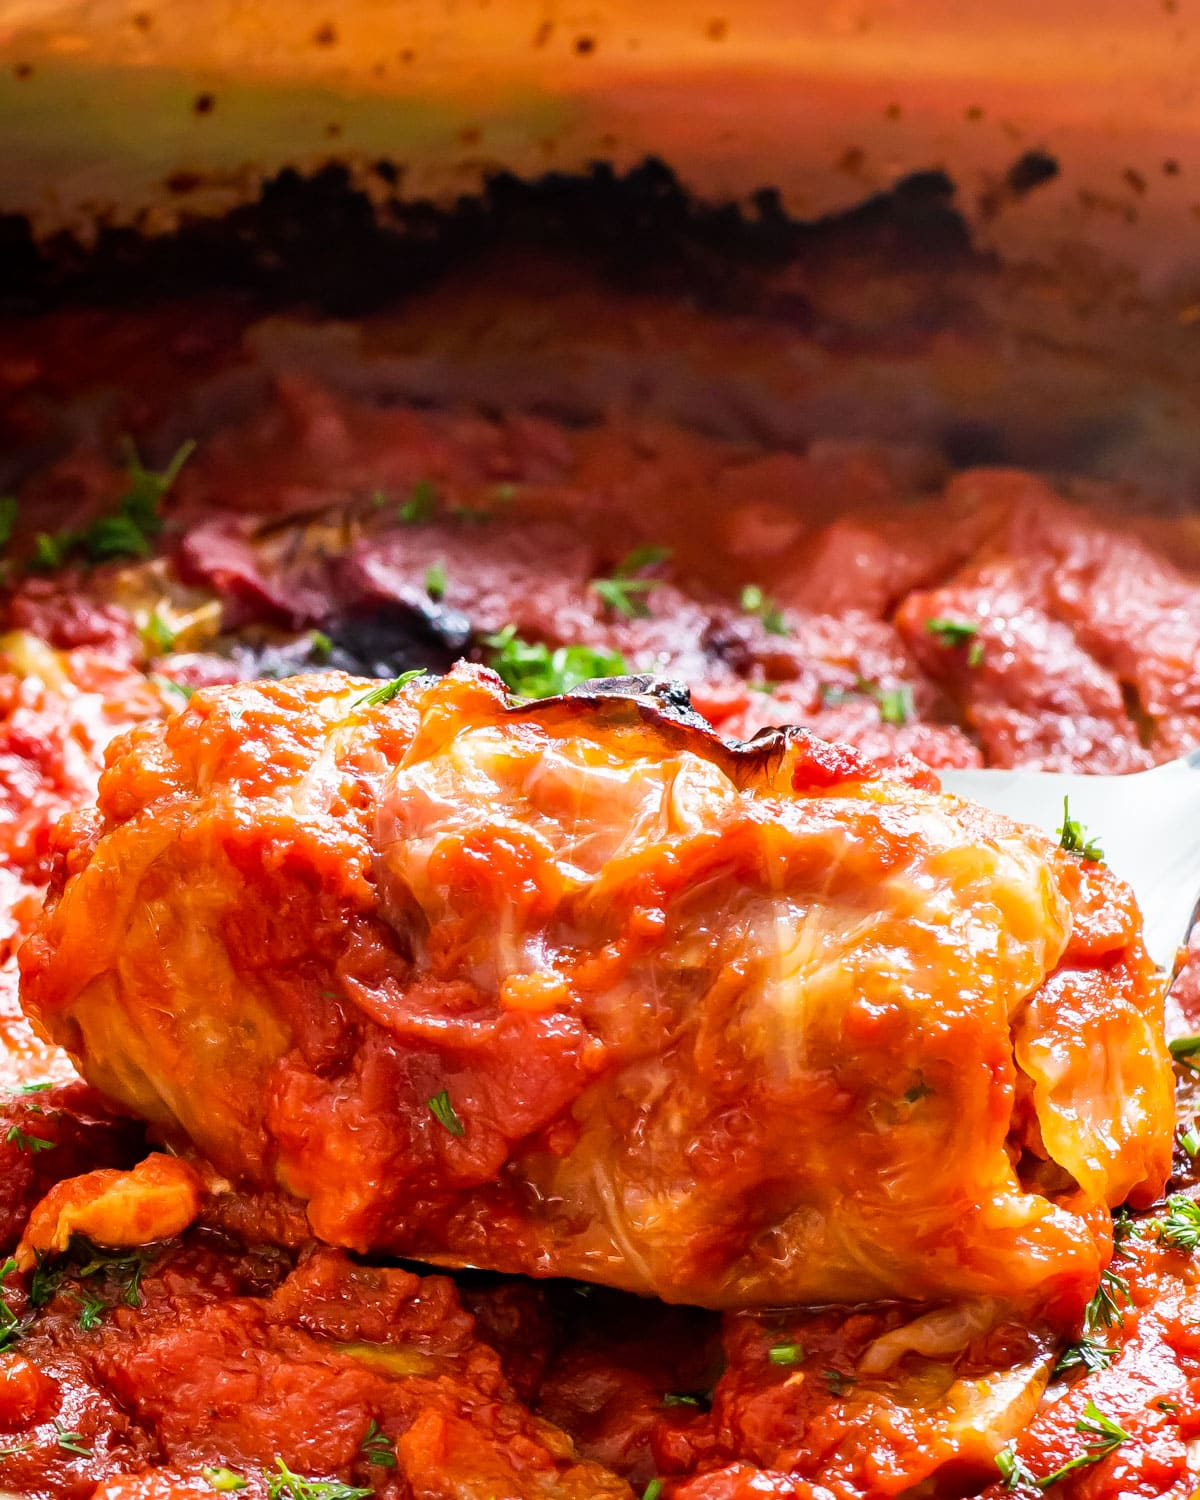 a stuffed cabbage roll in a pot full of them